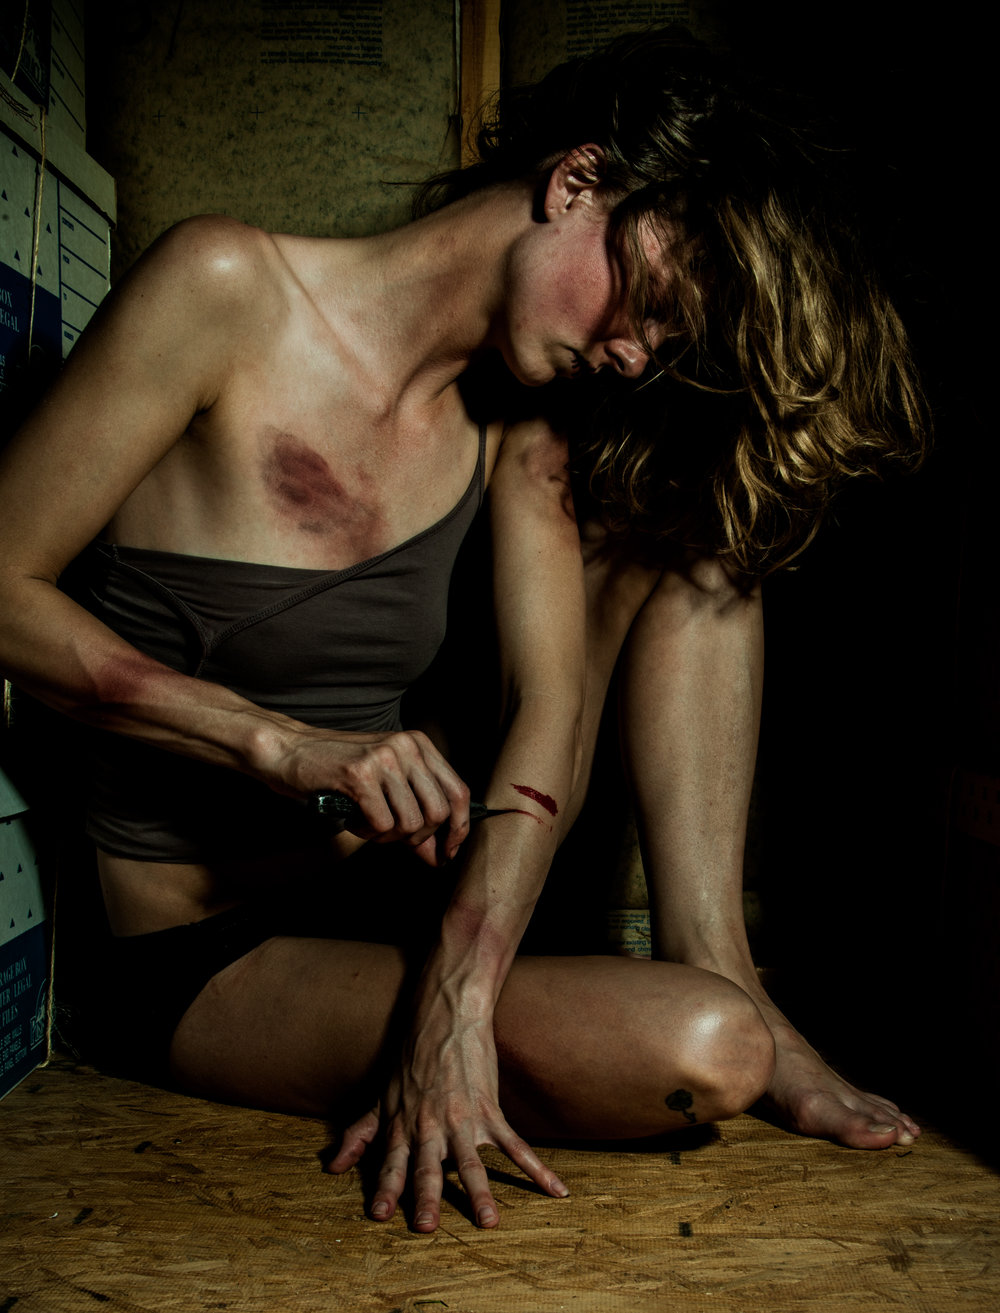 I stopped cutting myself - at 24 years old, summer of 2014. I decided leaving marks on my body was not attractive. Bleeding wounds to cover the mental anguish would not be much of an answer. I didn't want to appear crazy to anyone who saw them, either. I already have many scars from cutting myself, why do I want more? I had pierced my ears a dozen times, sliced my leg, my arm, finger, ankle, pelvis, etc... I used all of that to push out the mental/emotional pain I suffered from this and that. My scars have memories attached to them and I am now covering them with beautiful tattoos.